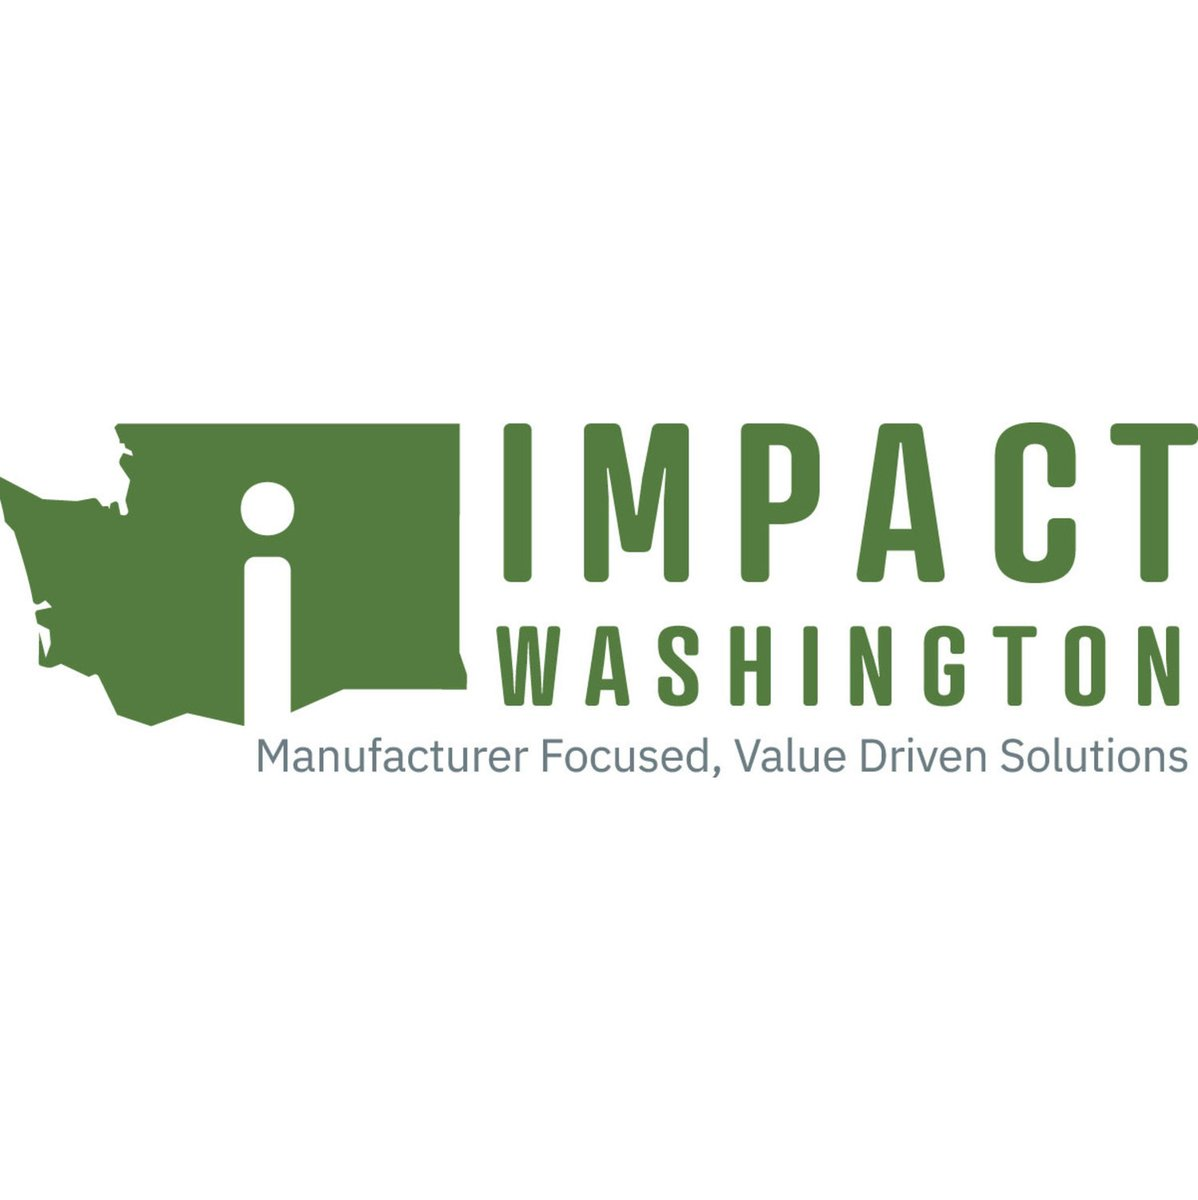 #ImpactWashington, the #WashingtonState @NIST_MEP Center is inviting WA based US Small-and medium-sized mfgs to apply for CARES Act Recovery Assistance funds. Funds provide services that directly support mfgs ability to recover prn.to/2W1DAlP